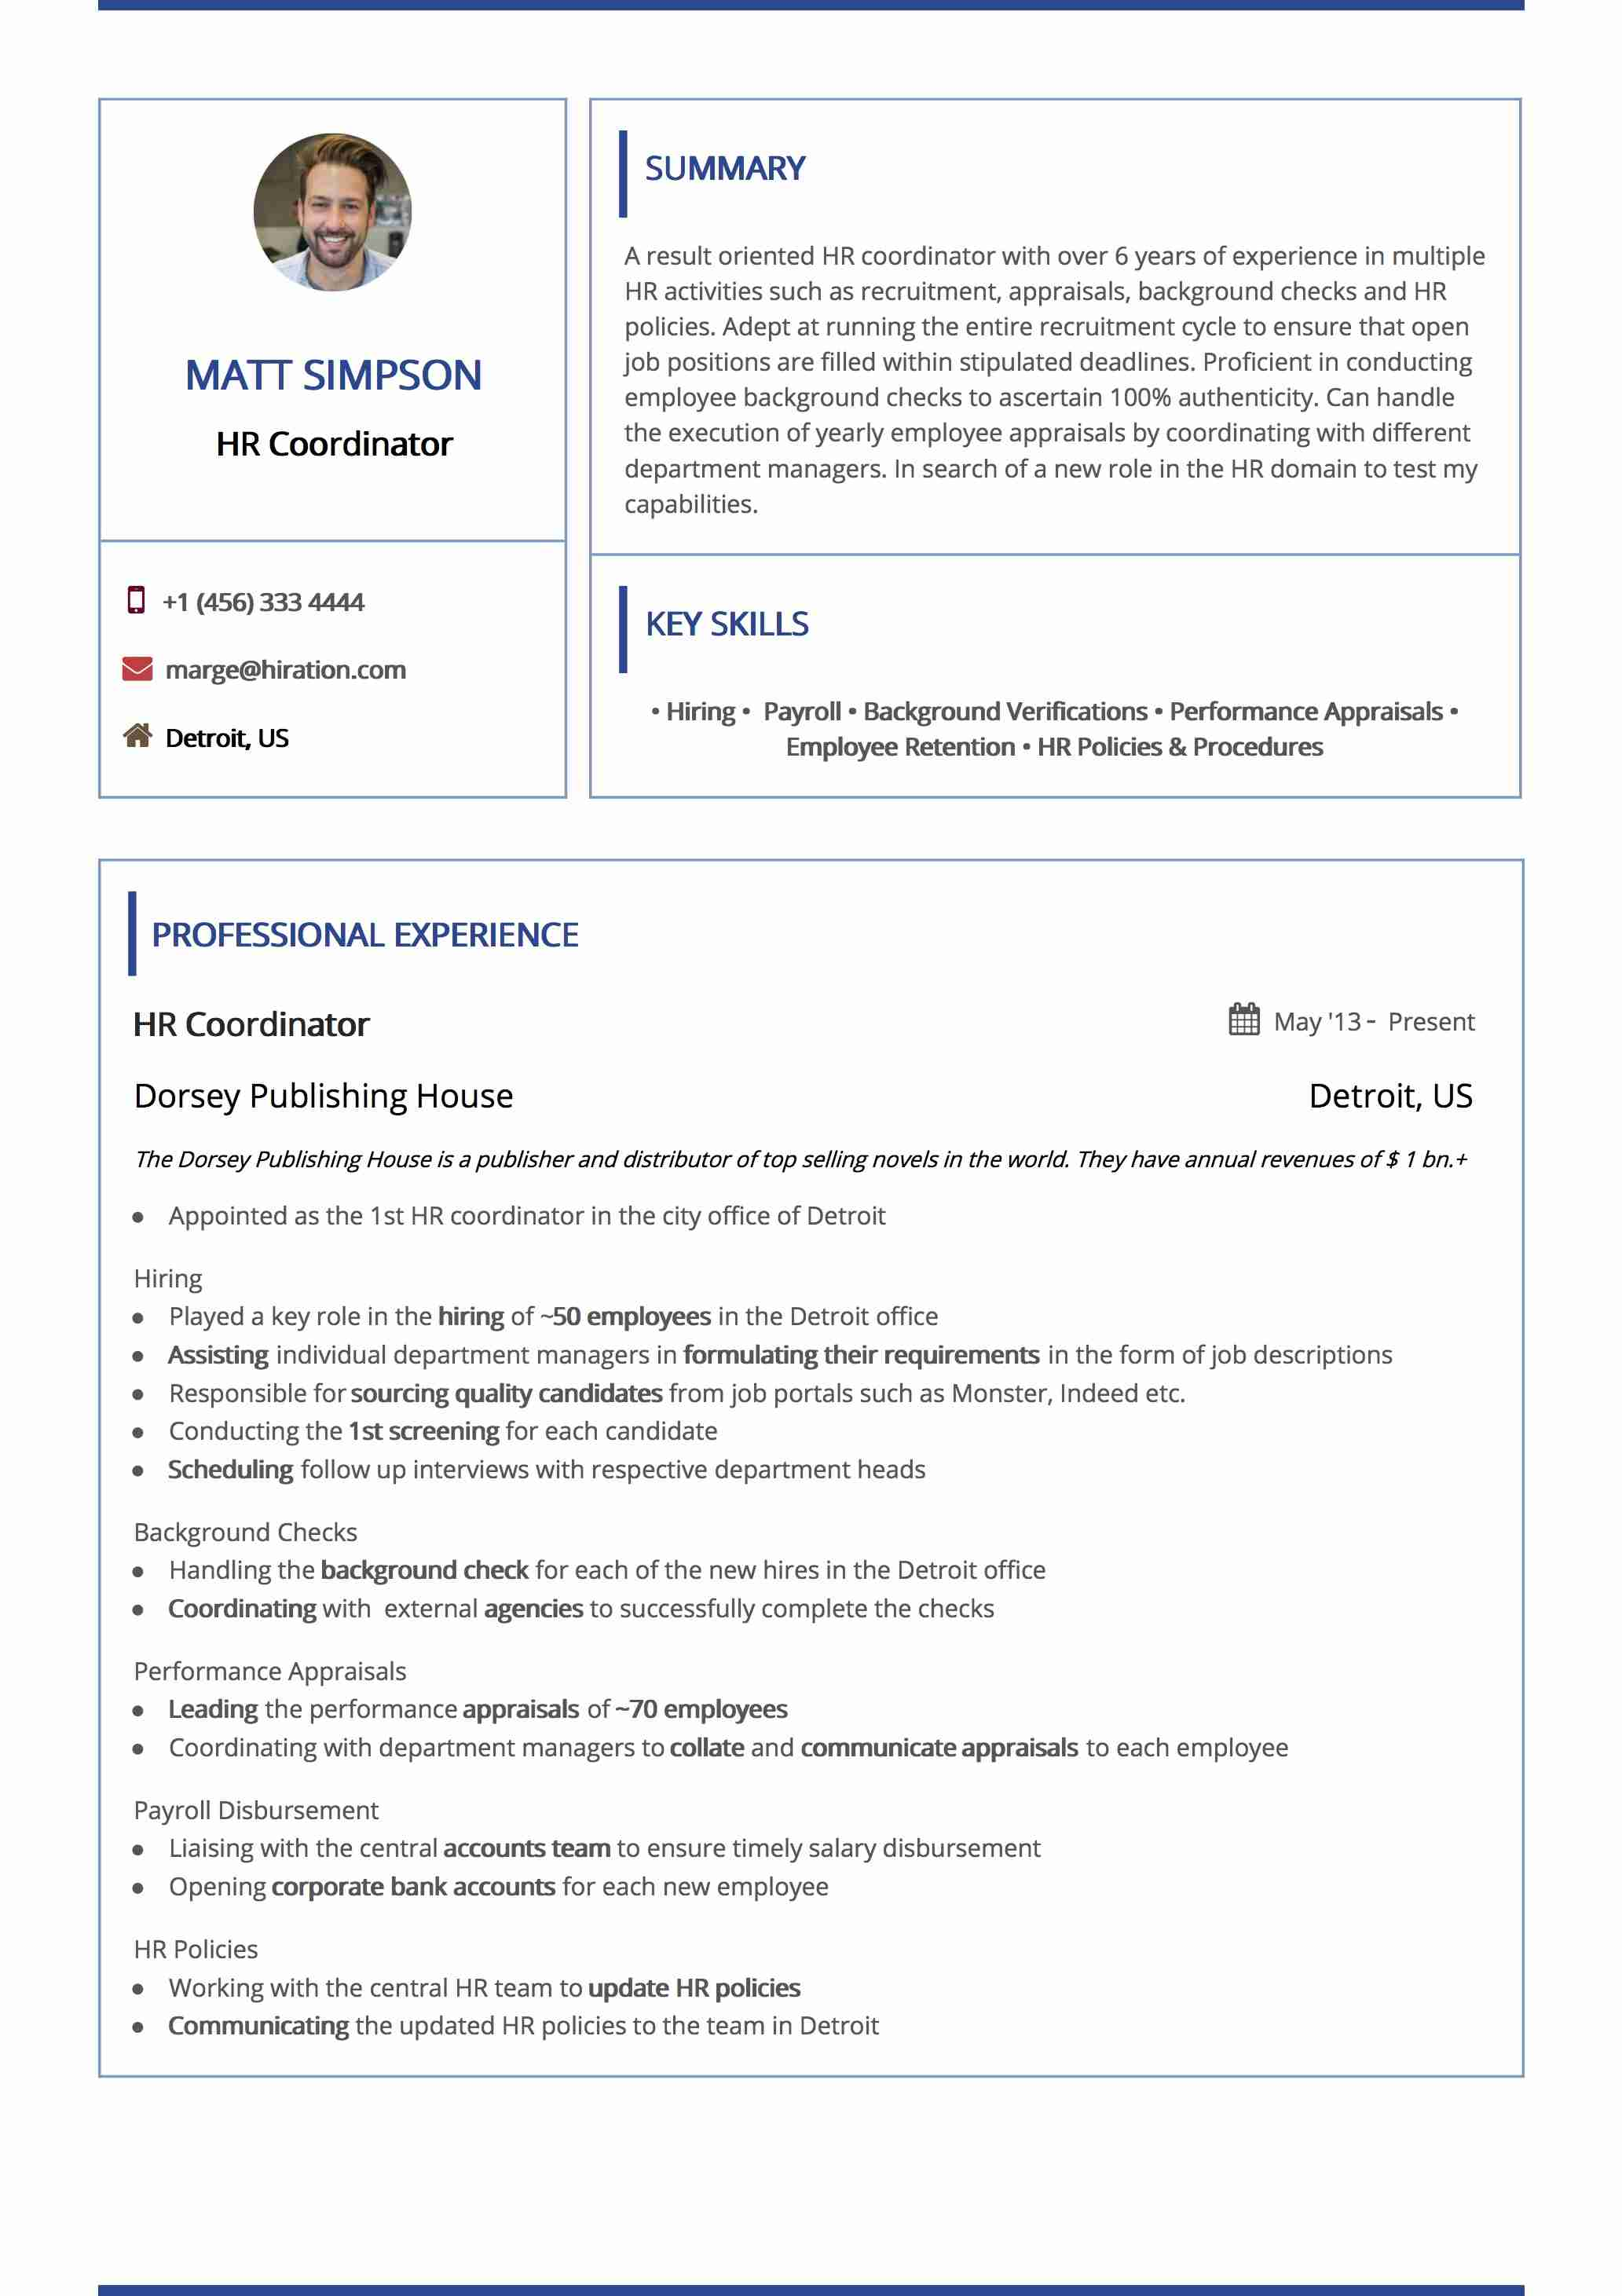 Resume Template: Boxed Navy